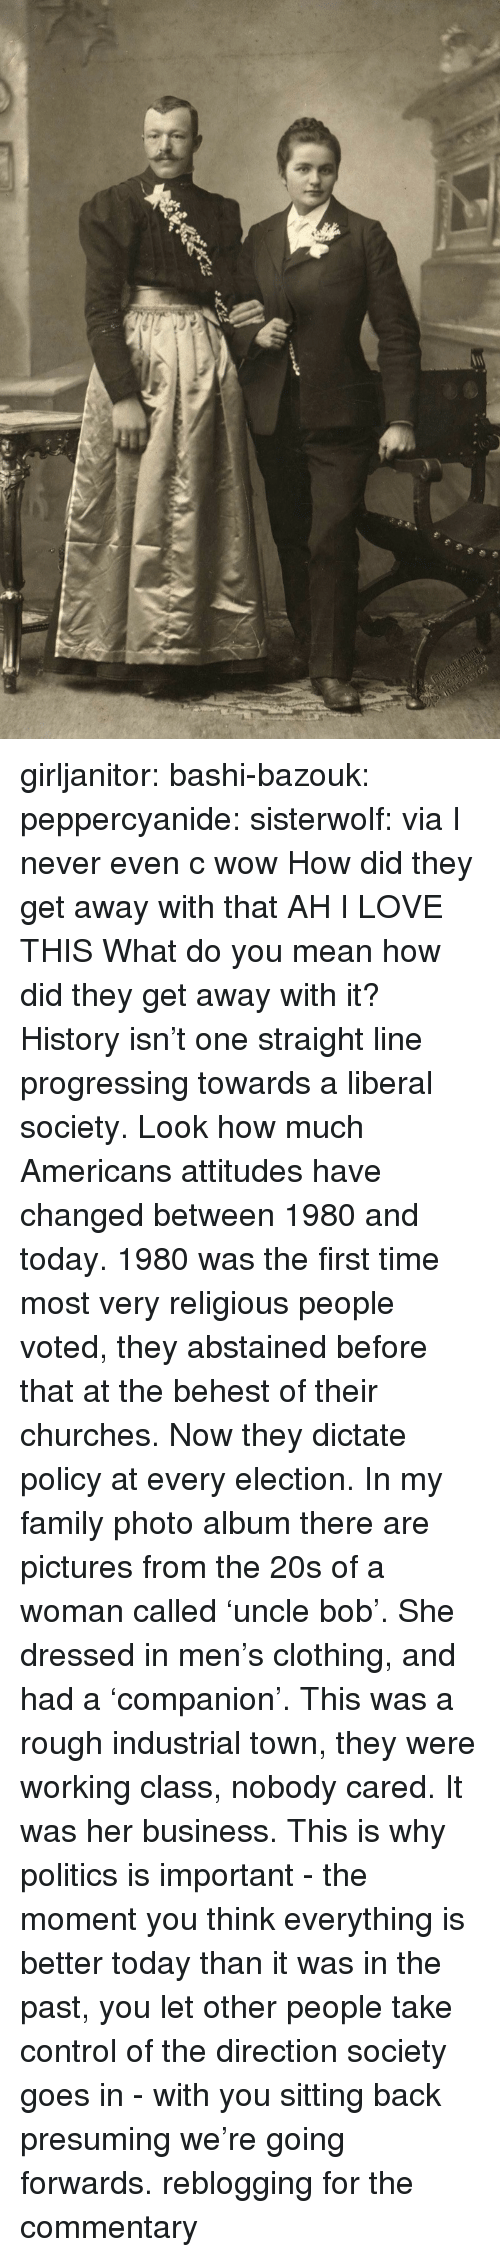 Family, Love, and Politics: girljanitor: bashi-bazouk:   peppercyanide:   sisterwolf:    via    I never even c wow How did they get away with that AH I LOVE THIS   What do you mean how did they get away with it? History isn't one straight line progressing towards a liberal society. Look how much Americans attitudes have changed between 1980 and today. 1980 was the first time most very religious people voted, they abstained before that at the behest of their churches. Now they dictate policy at every election. In my family photo album there are pictures from the 20s of a woman called 'uncle bob'. She dressed in men's clothing, and had a 'companion'. This was a rough industrial town, they were working class, nobody cared. It was her business. This is why politics is important - the moment you think everything is better today than it was in the past, you let other people take control of the direction society goes in - with you sitting back presuming we're going forwards.   reblogging for the commentary